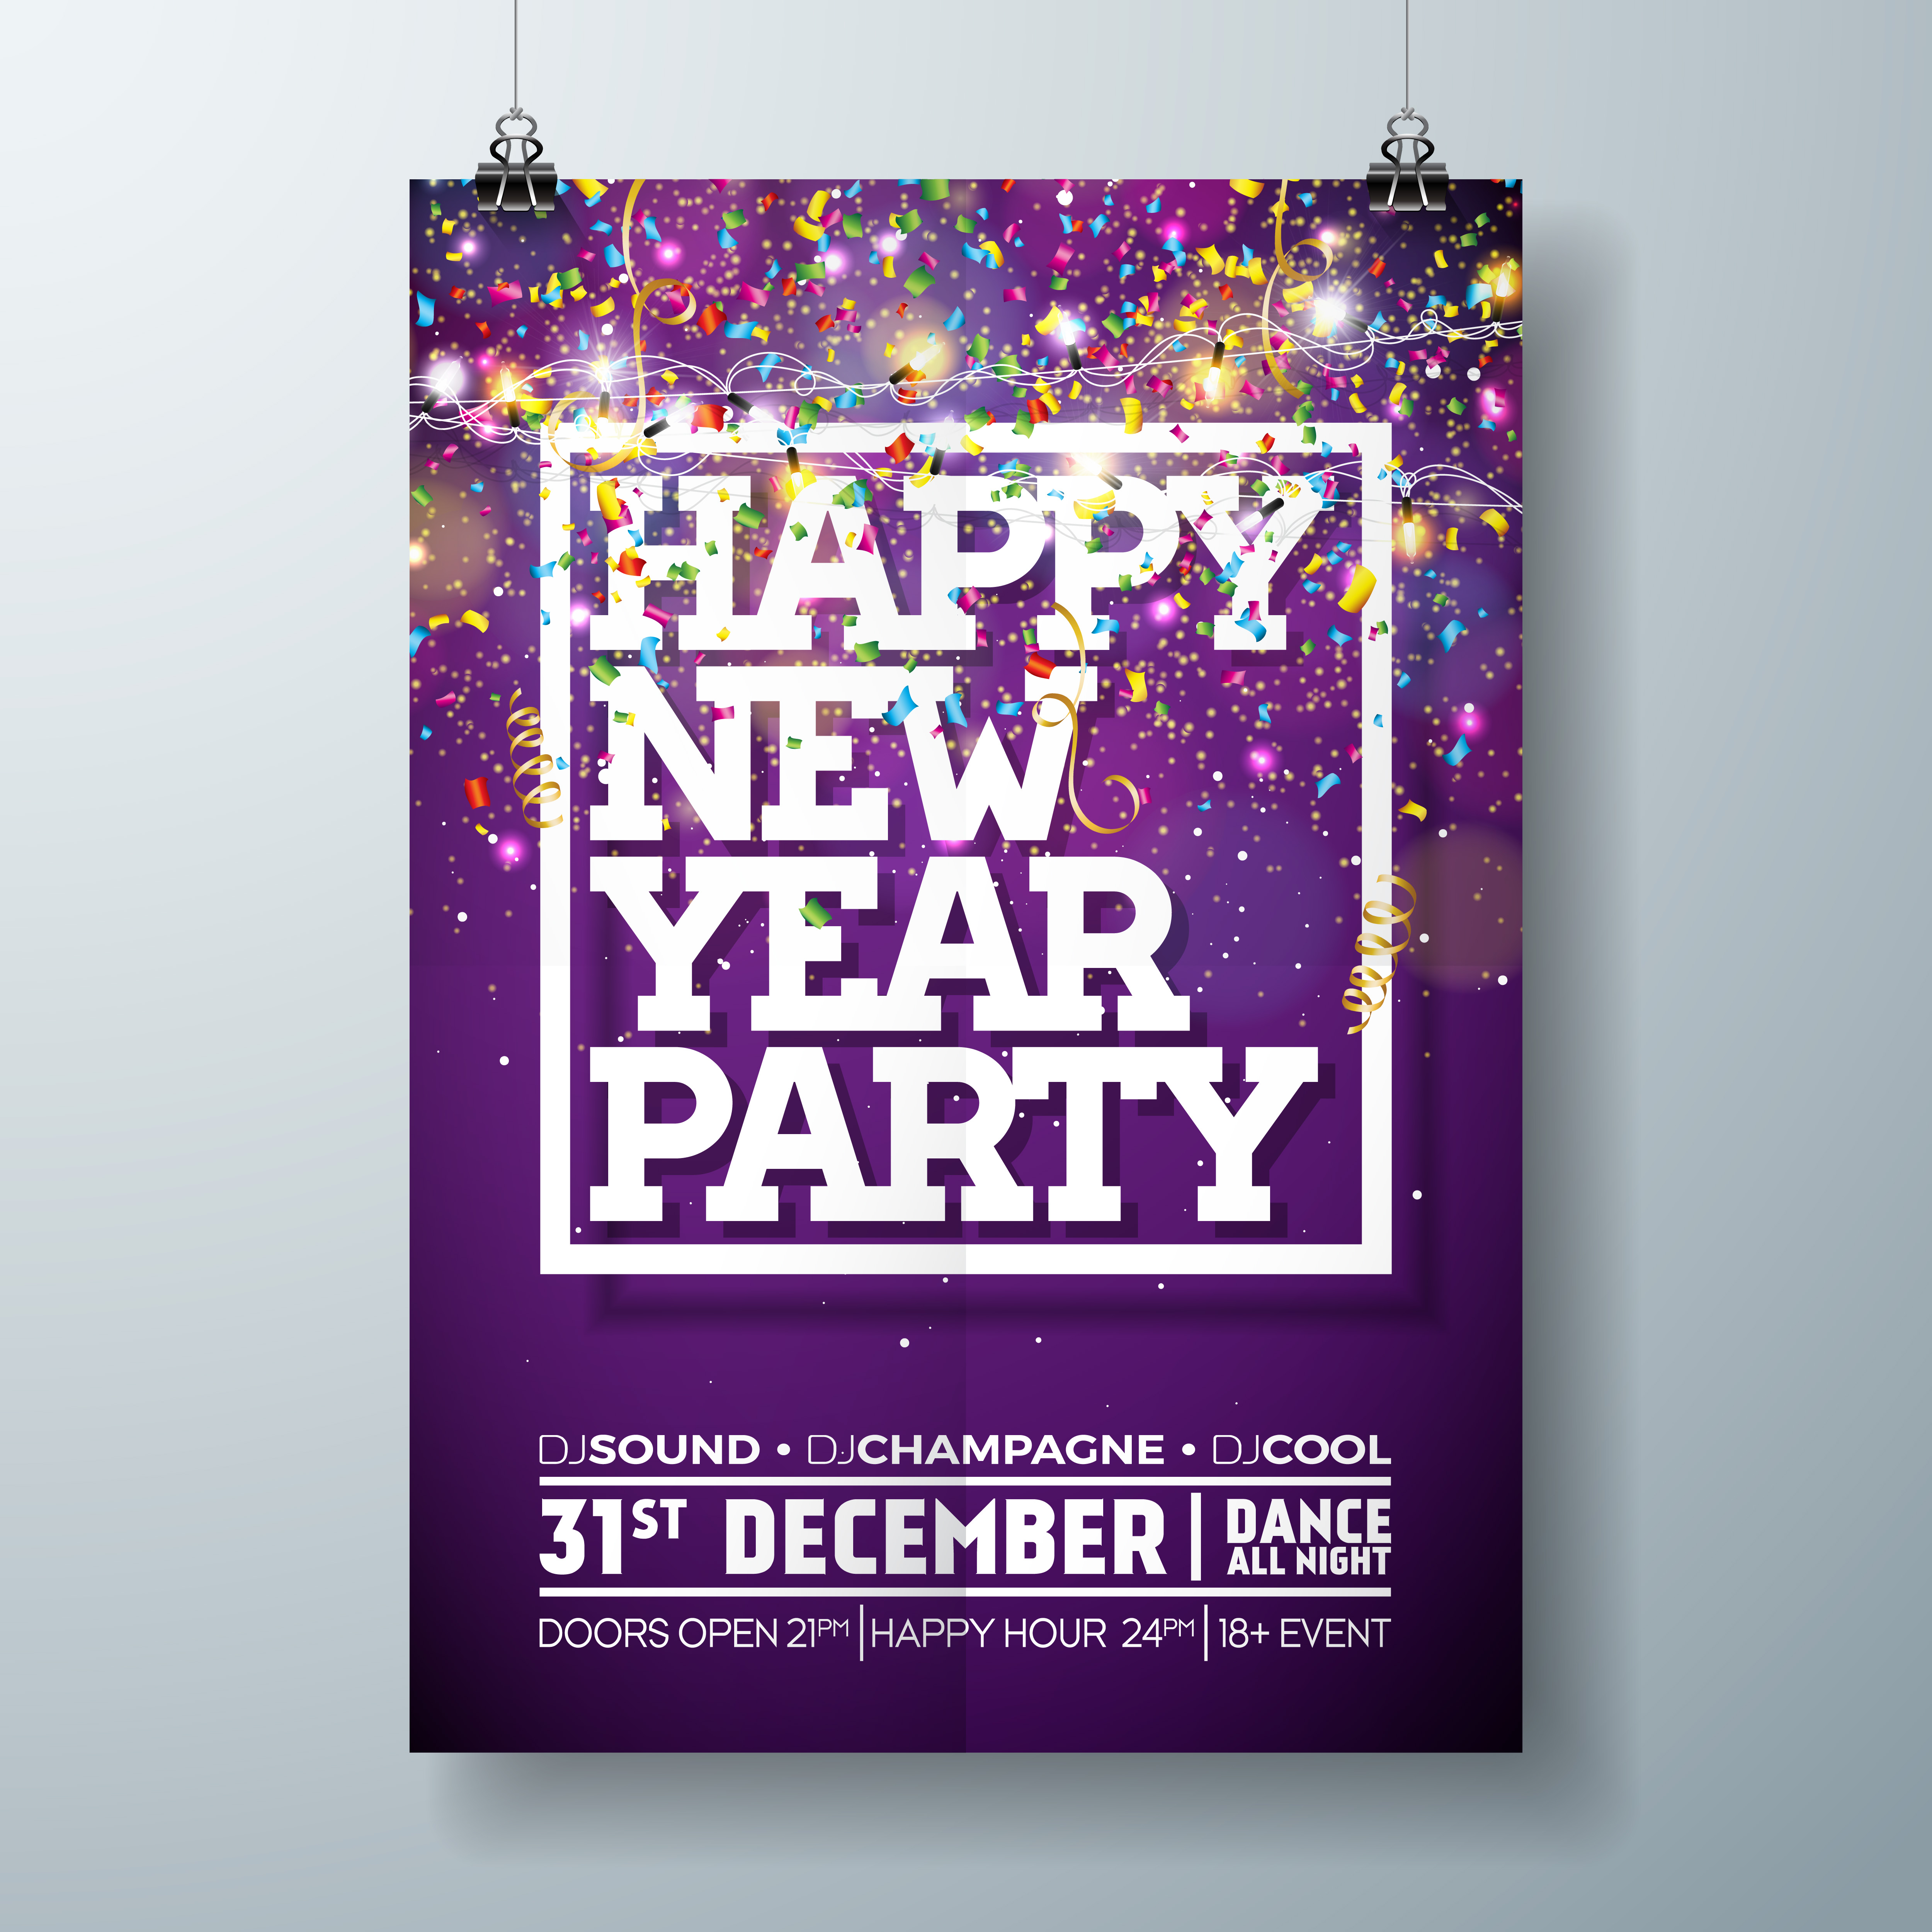 new year party celebration poster template illustration with typography design and falling